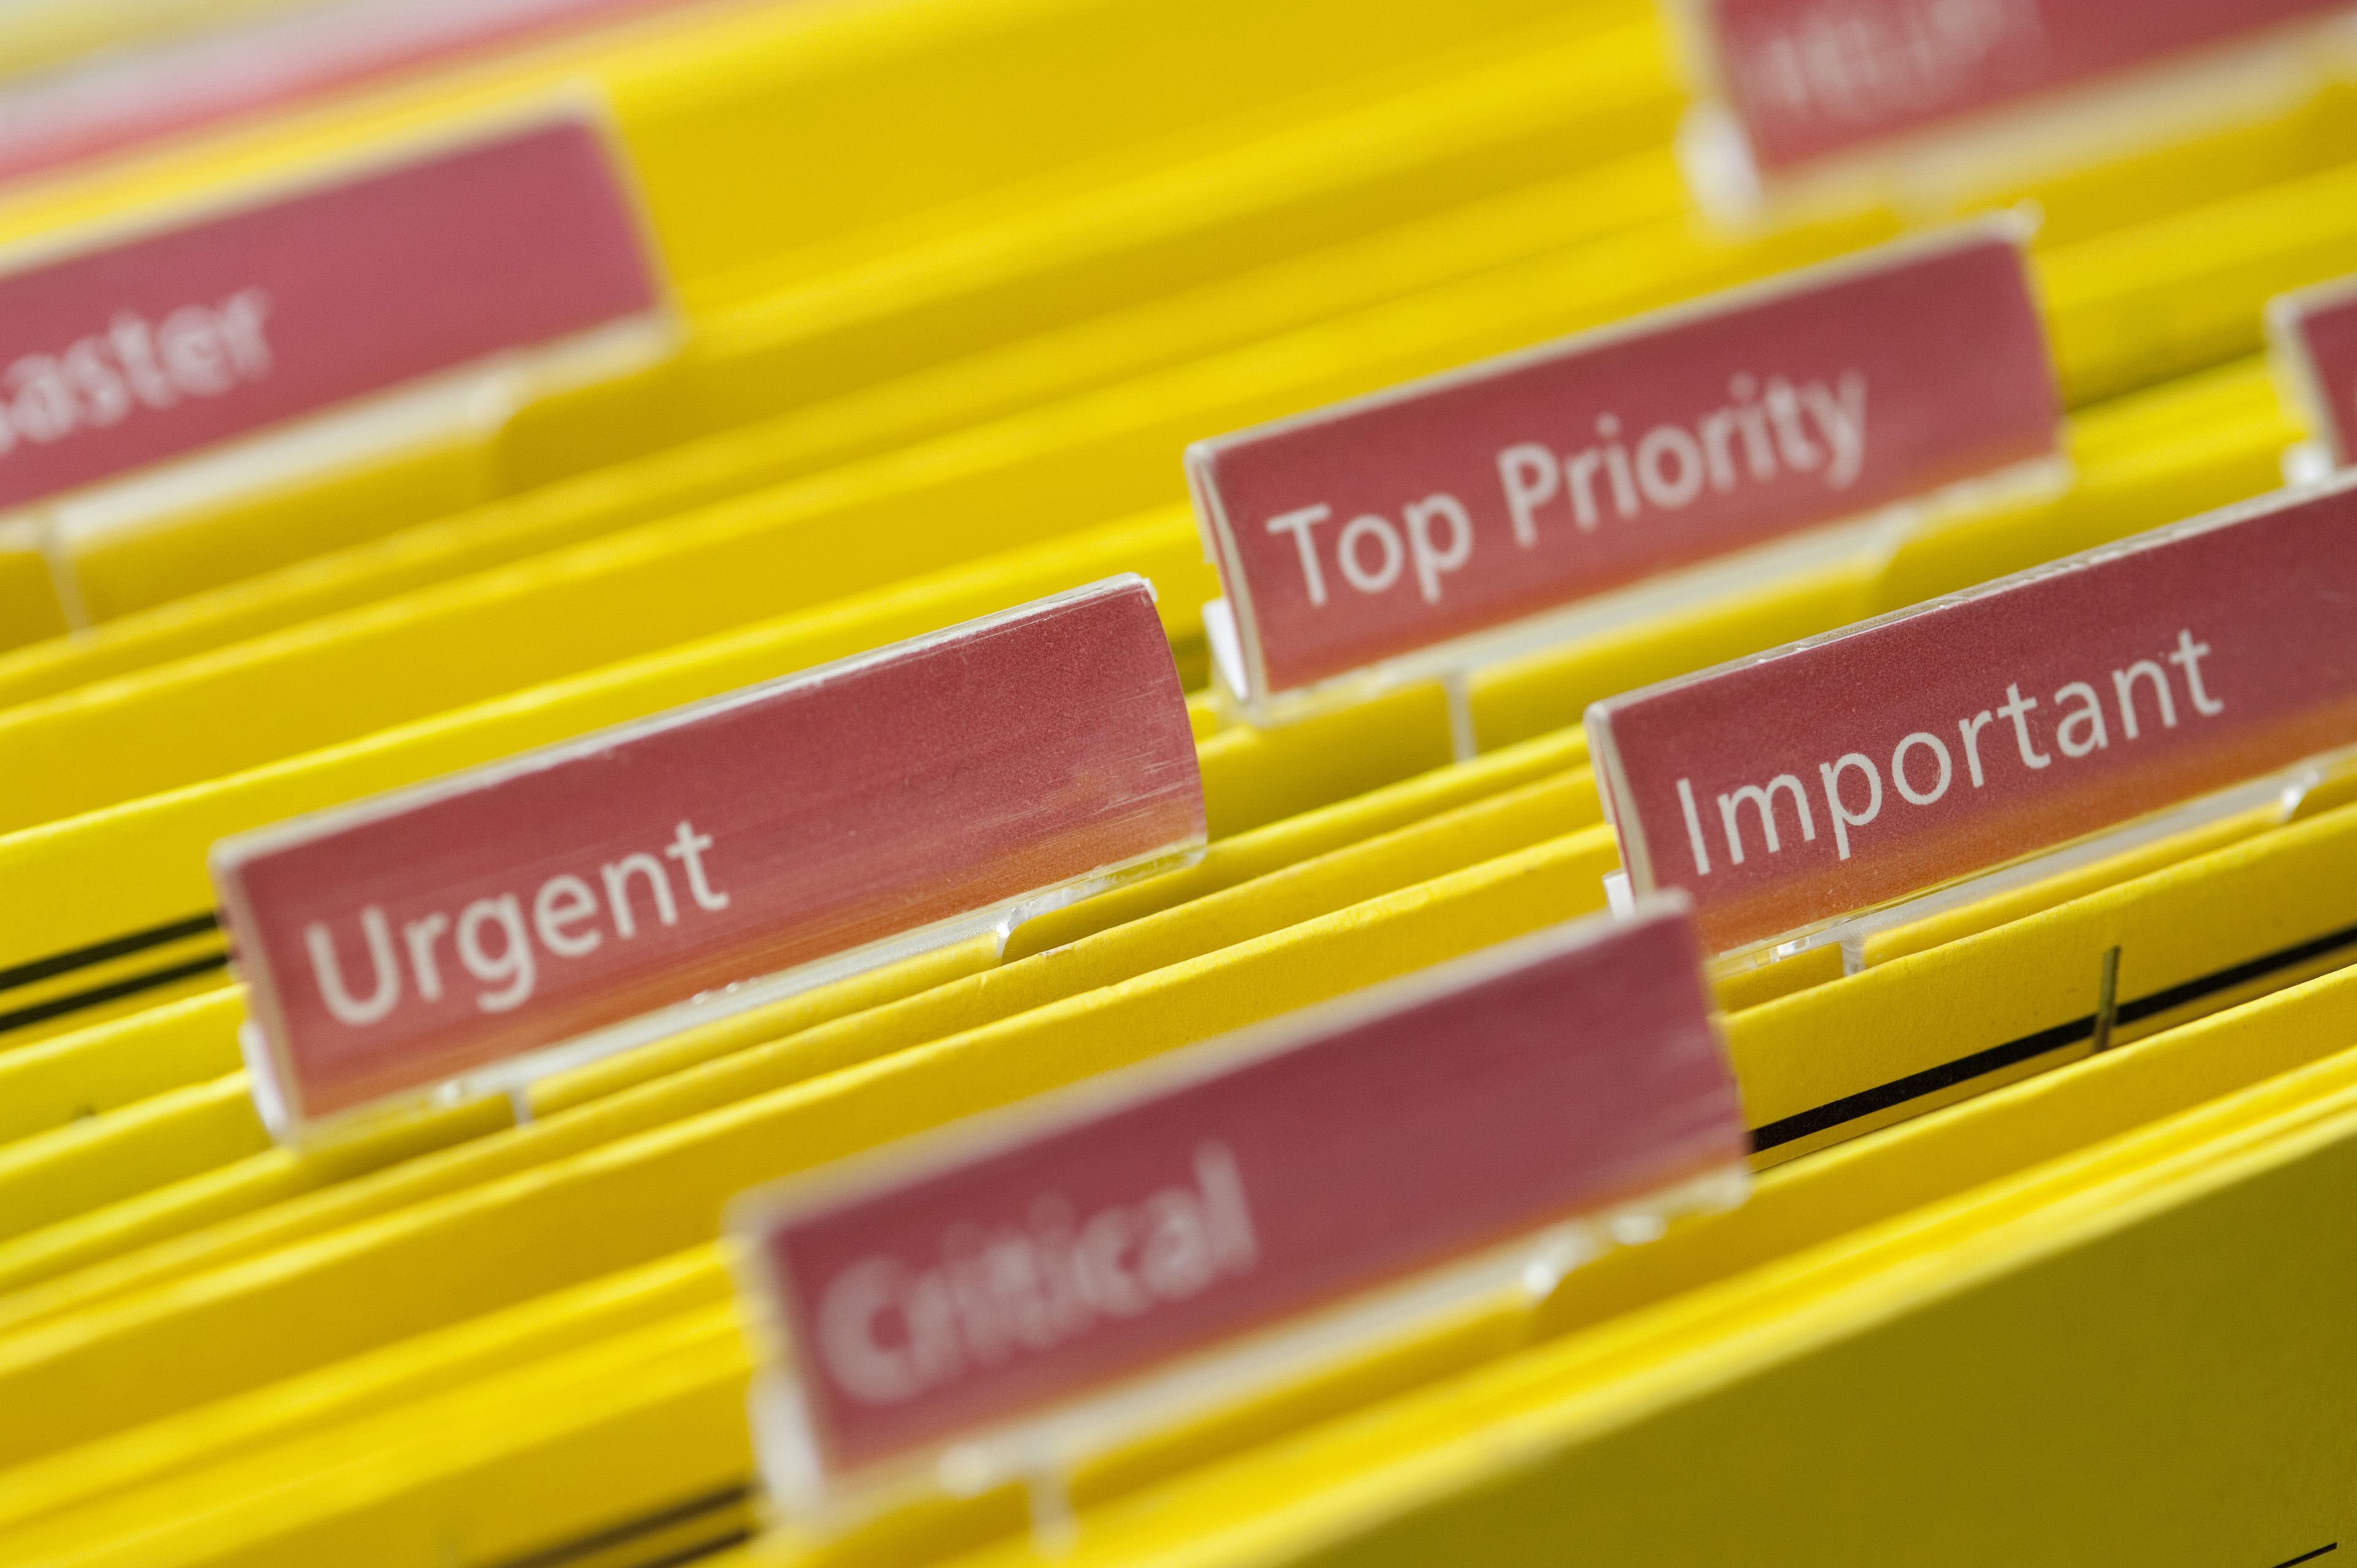 Busy Concept - Close up Yellow Folders with Labels Emphasizing Urgent, Critical, Important and Top Priority Keywords.